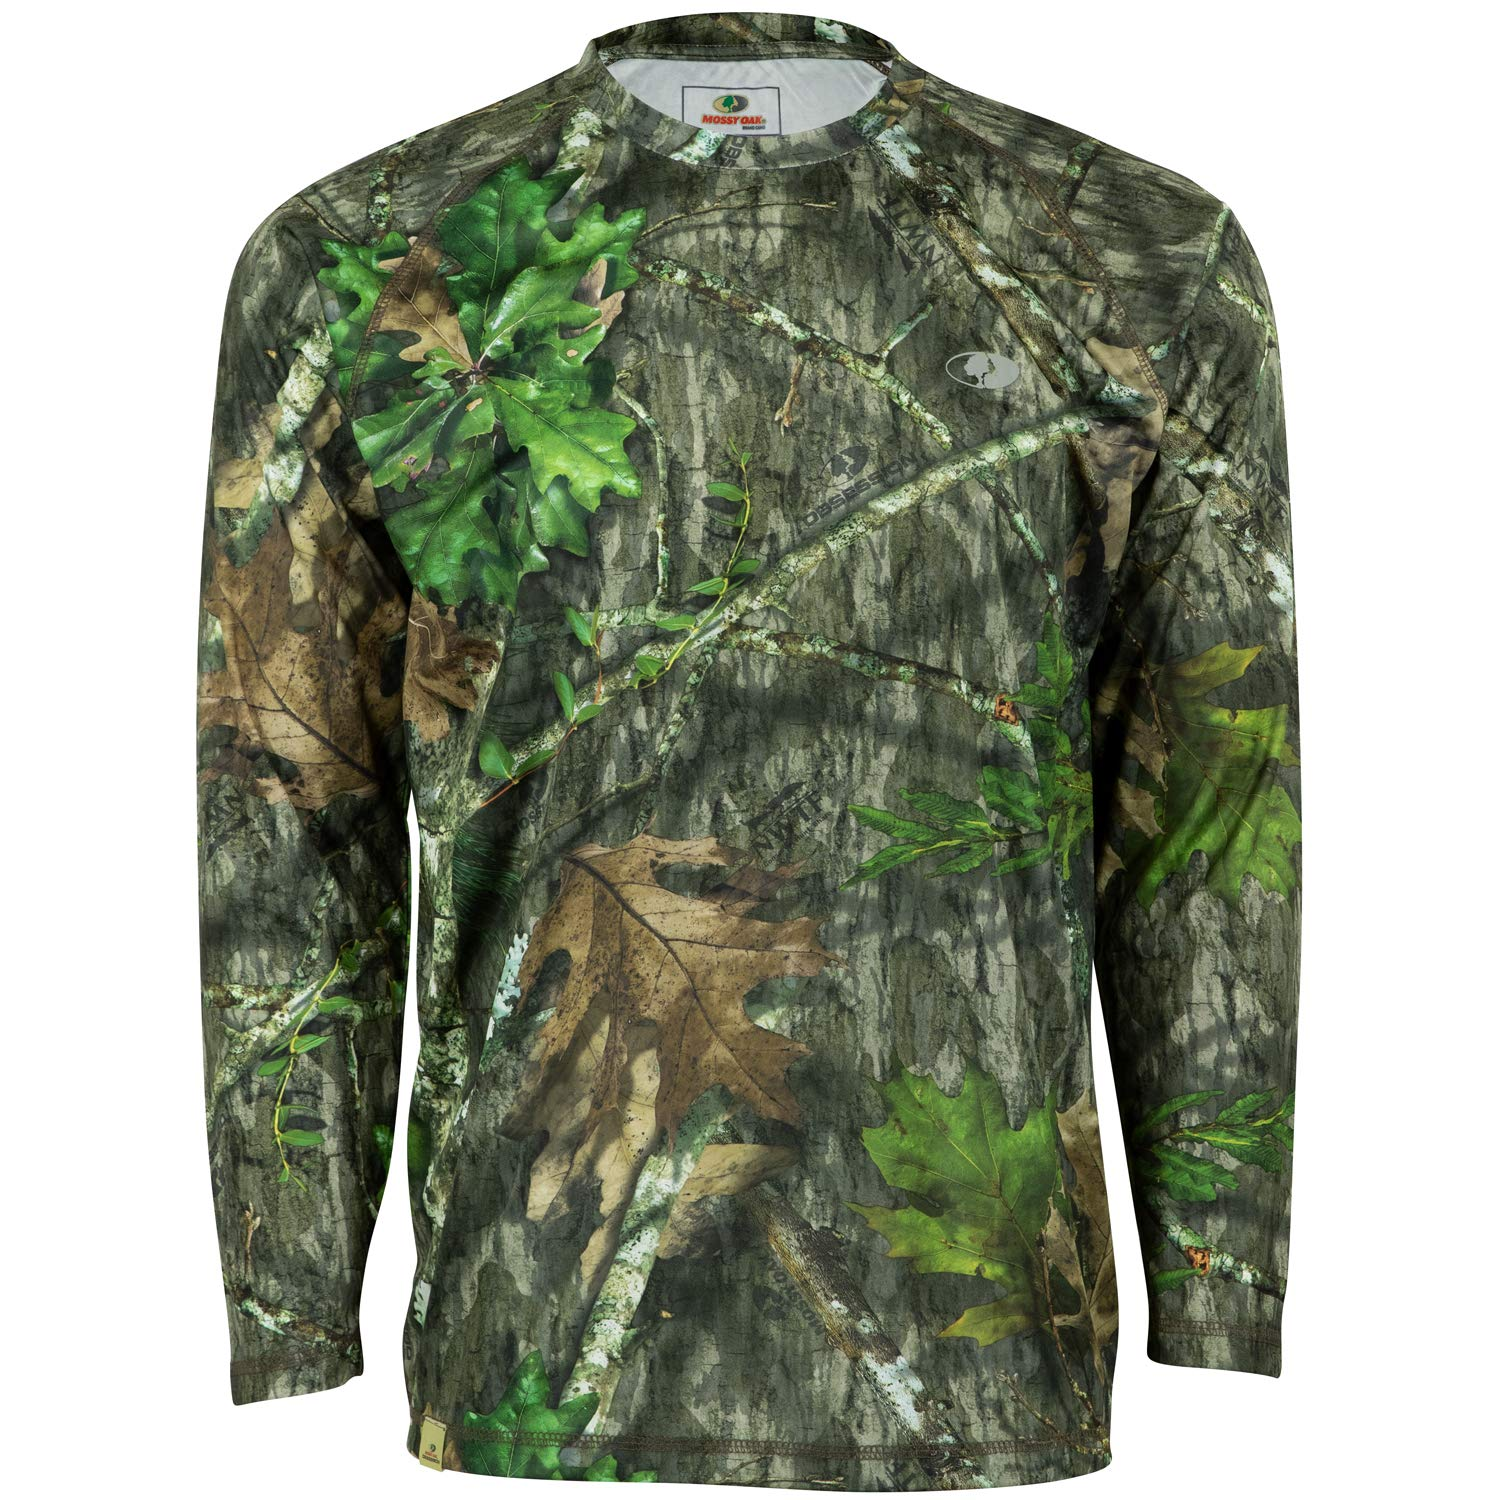 adf82817359e5 Amazon.com : Mossy Oak Youth Camo Performance Long Sleeve Tech Hunting  Shirt : Sports & Outdoors